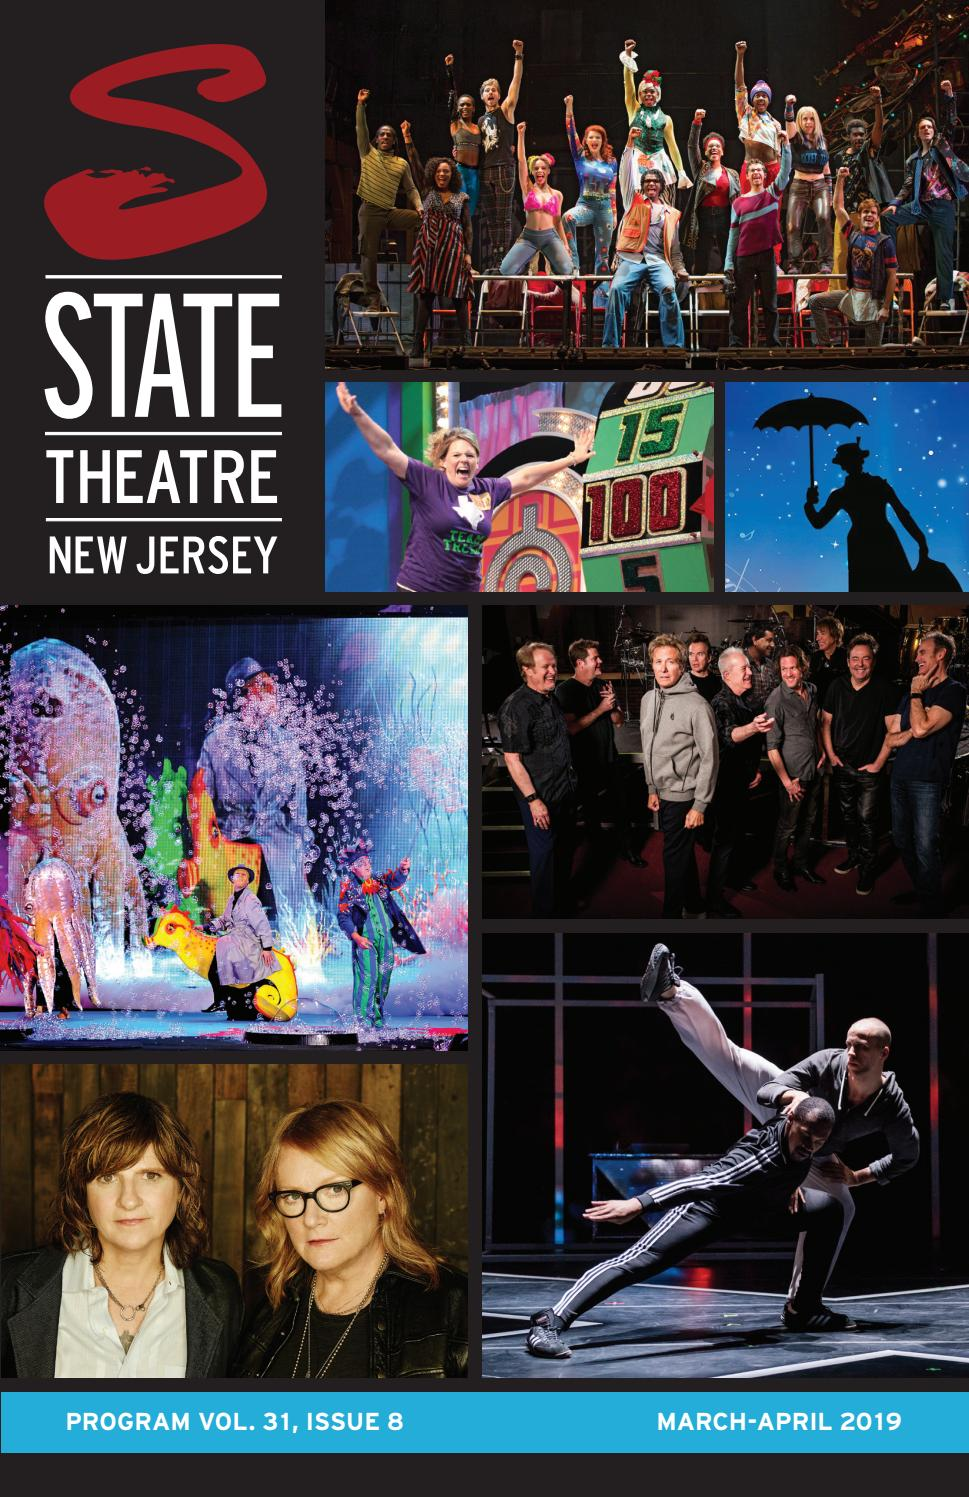 State Theatre New Jersey Program Vol  31, Issue 8 by State Theatre